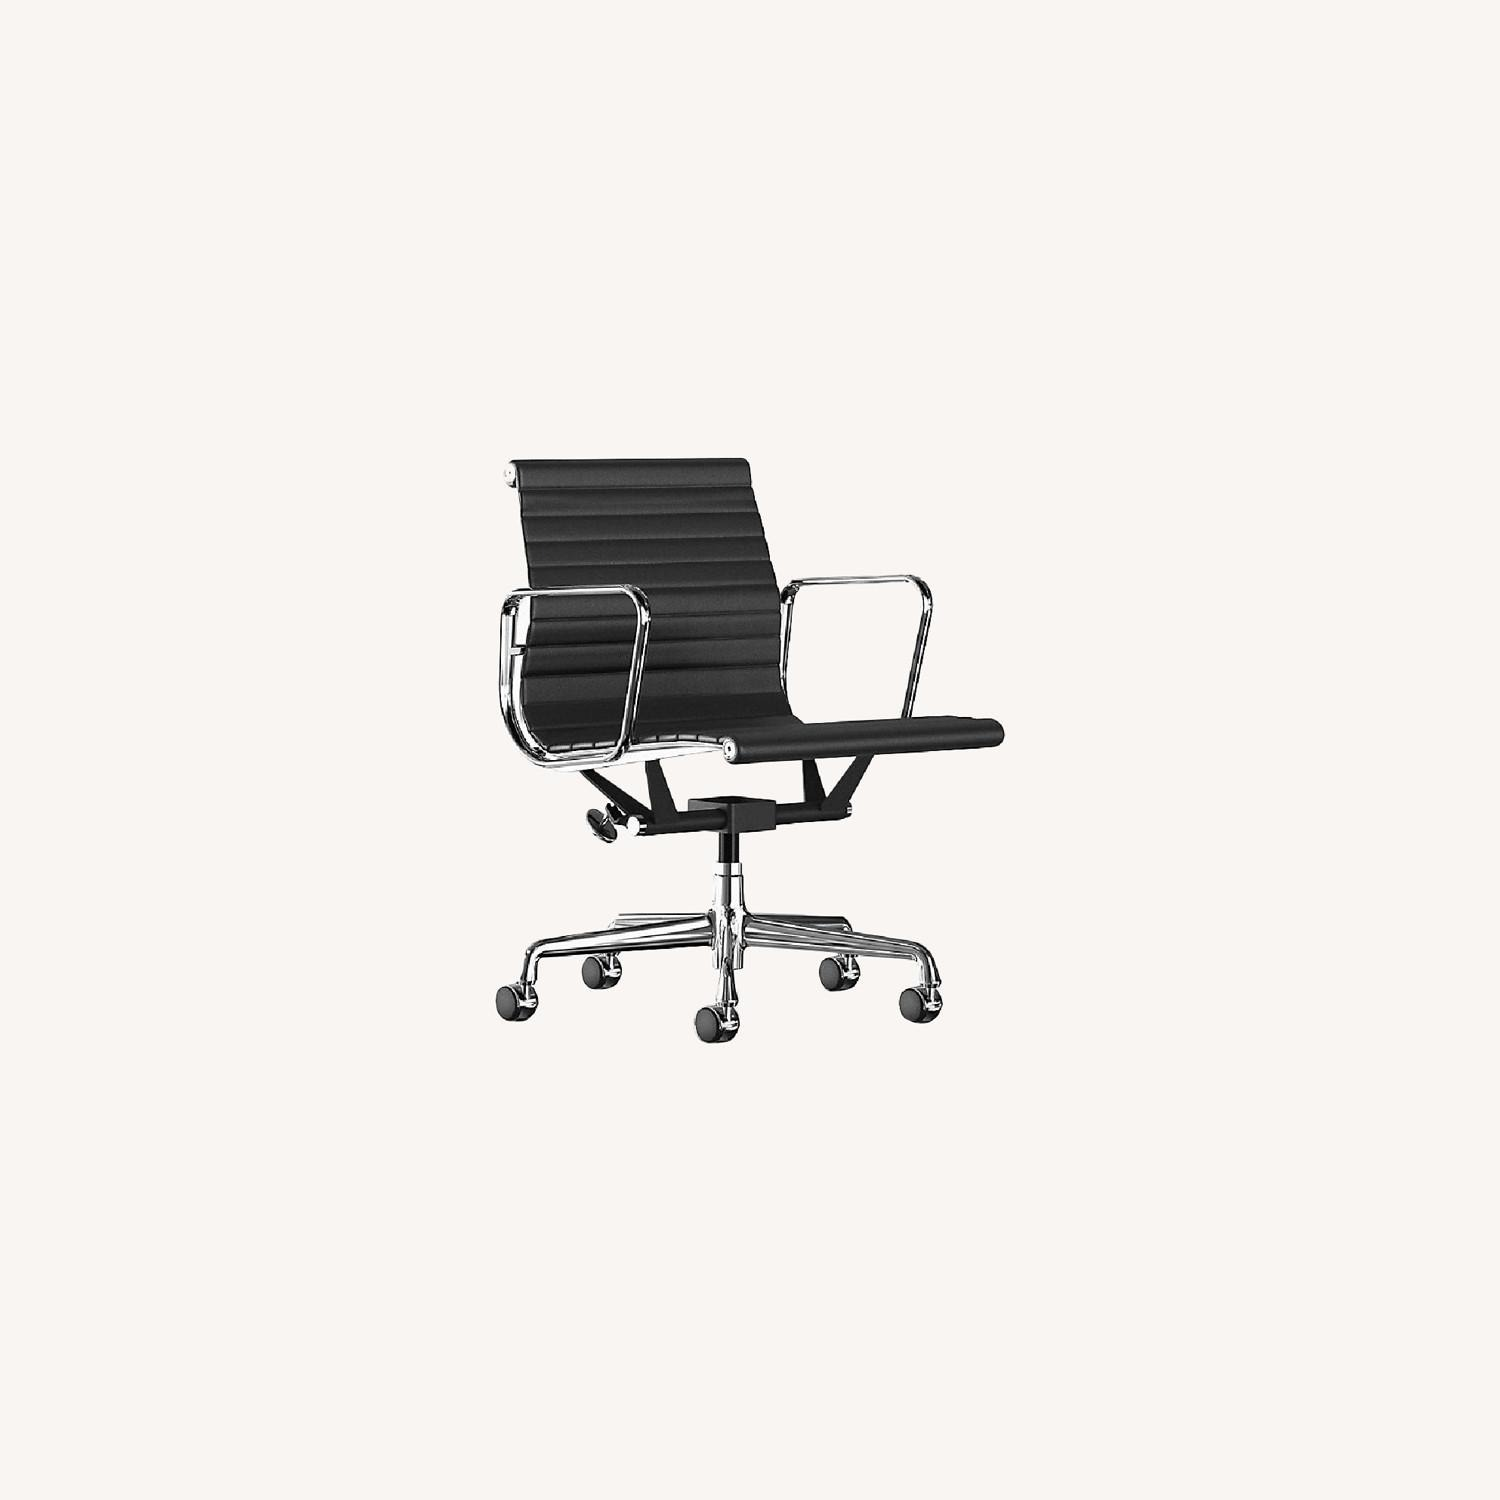 Herman Miller Eames Aluminum Group Chairs - image-0